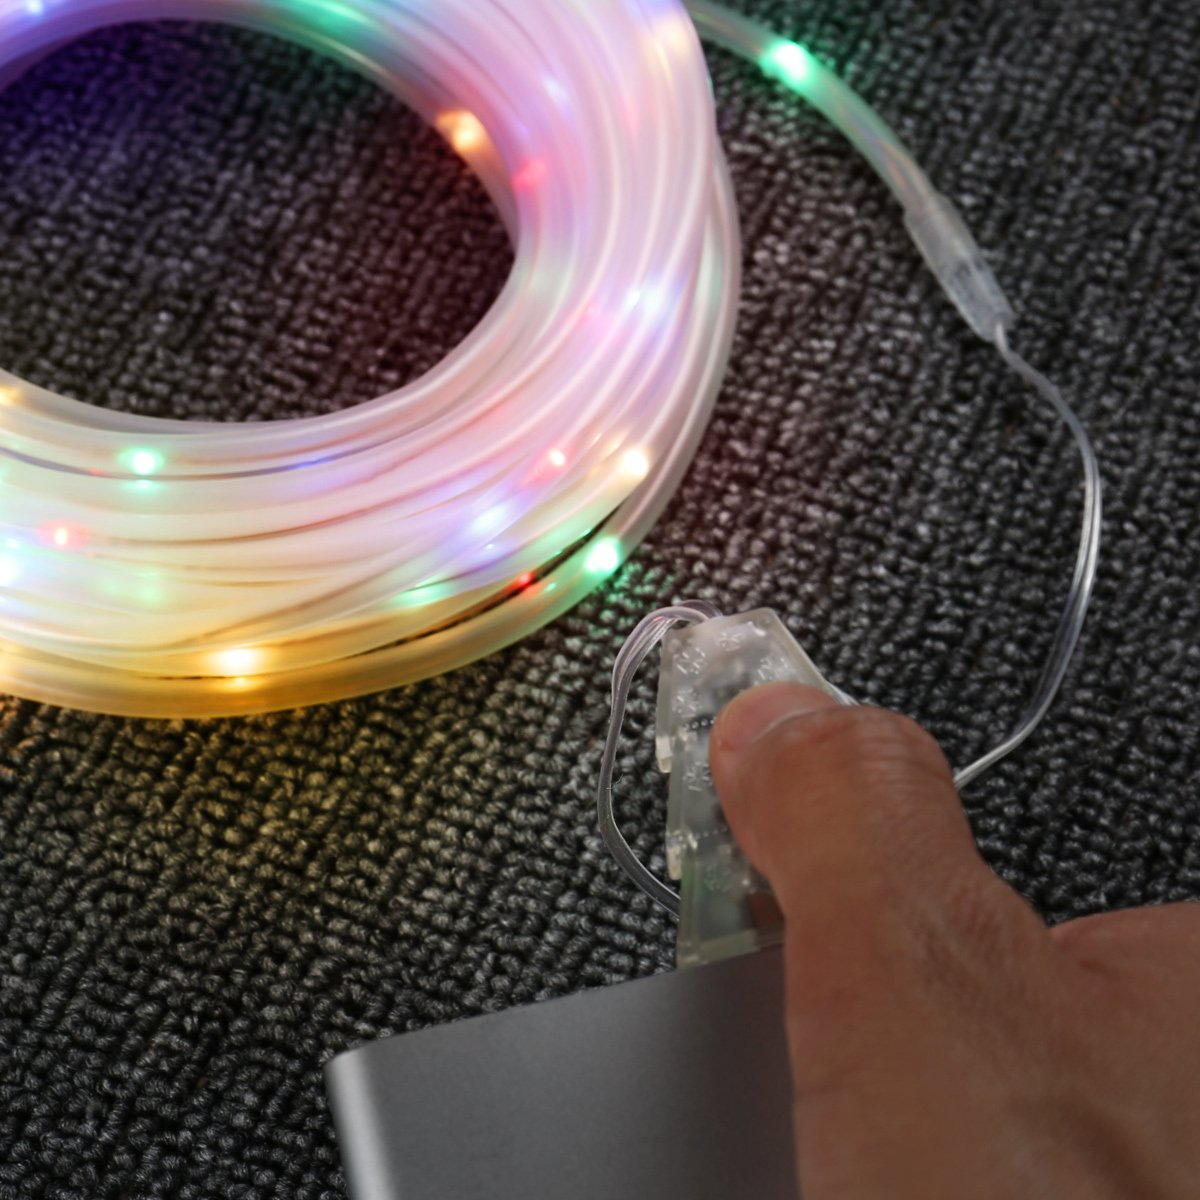 LE 33ft 100 LED Dimmable Rope Lights, USB Powered Waterproof Outdoor Rope Lighting, 8 Lighting Modes/Timer, Multi Color Patio Lights Ideal for Patio Gardens Parties Wedding Holiday Decor, RGB Light